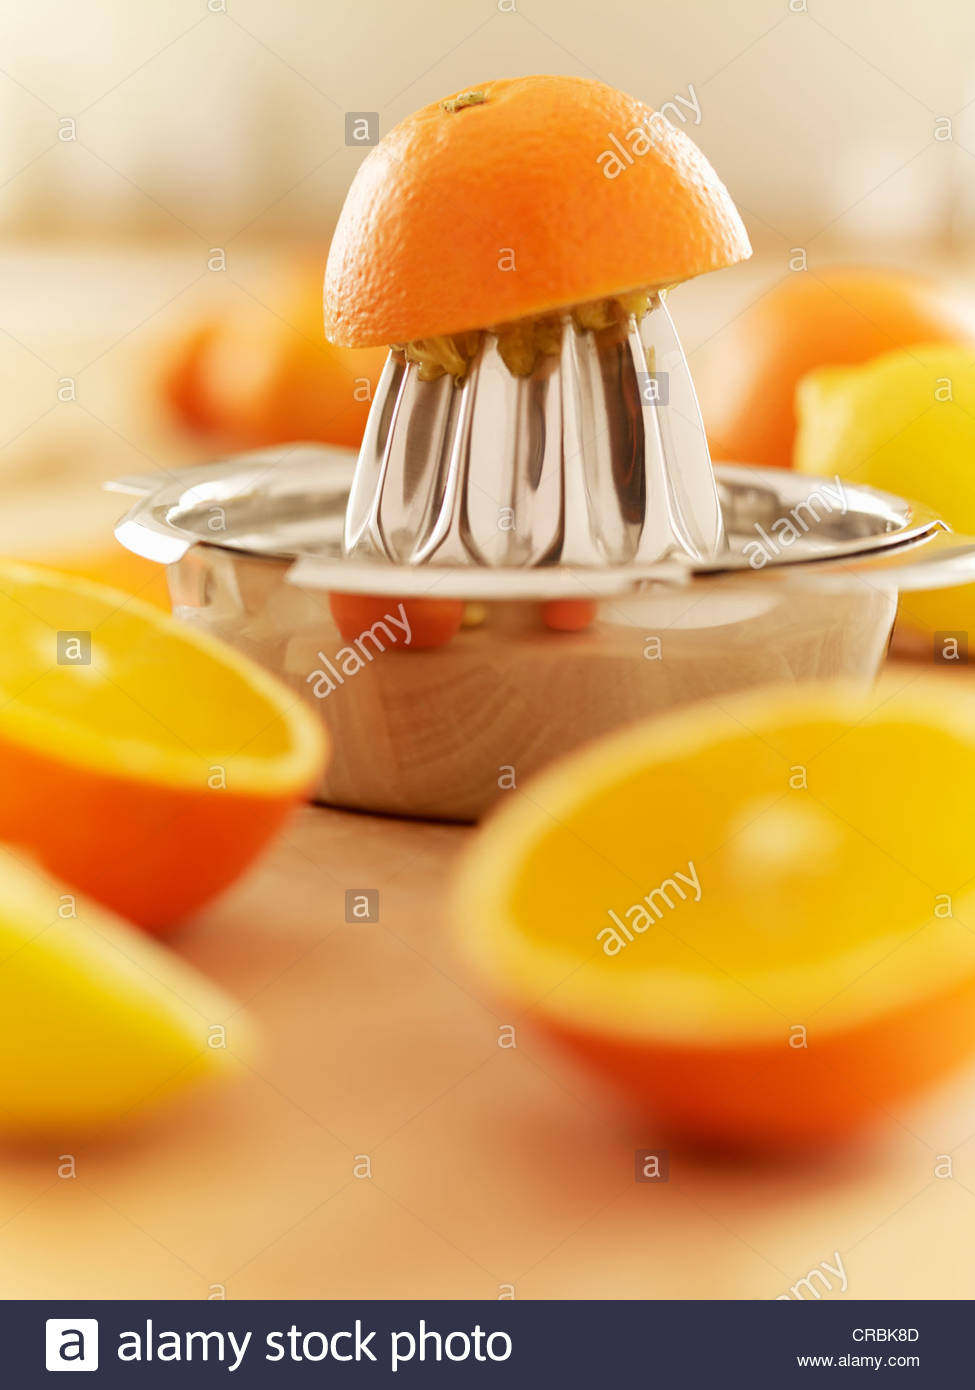 Oranges and juicer Stock Photo